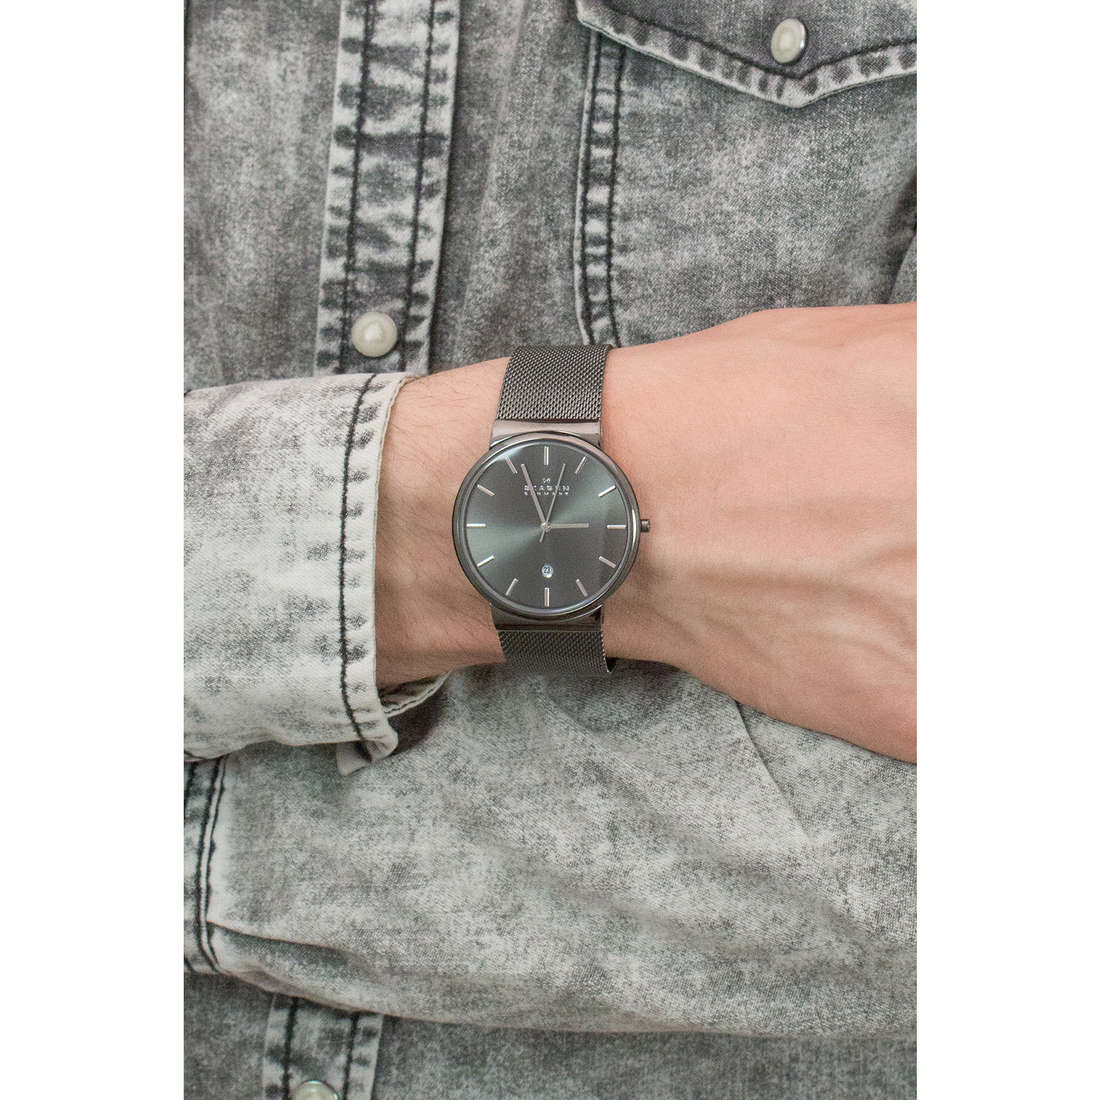 Skagen seul le temps Ancher homme SKW6108 photo wearing